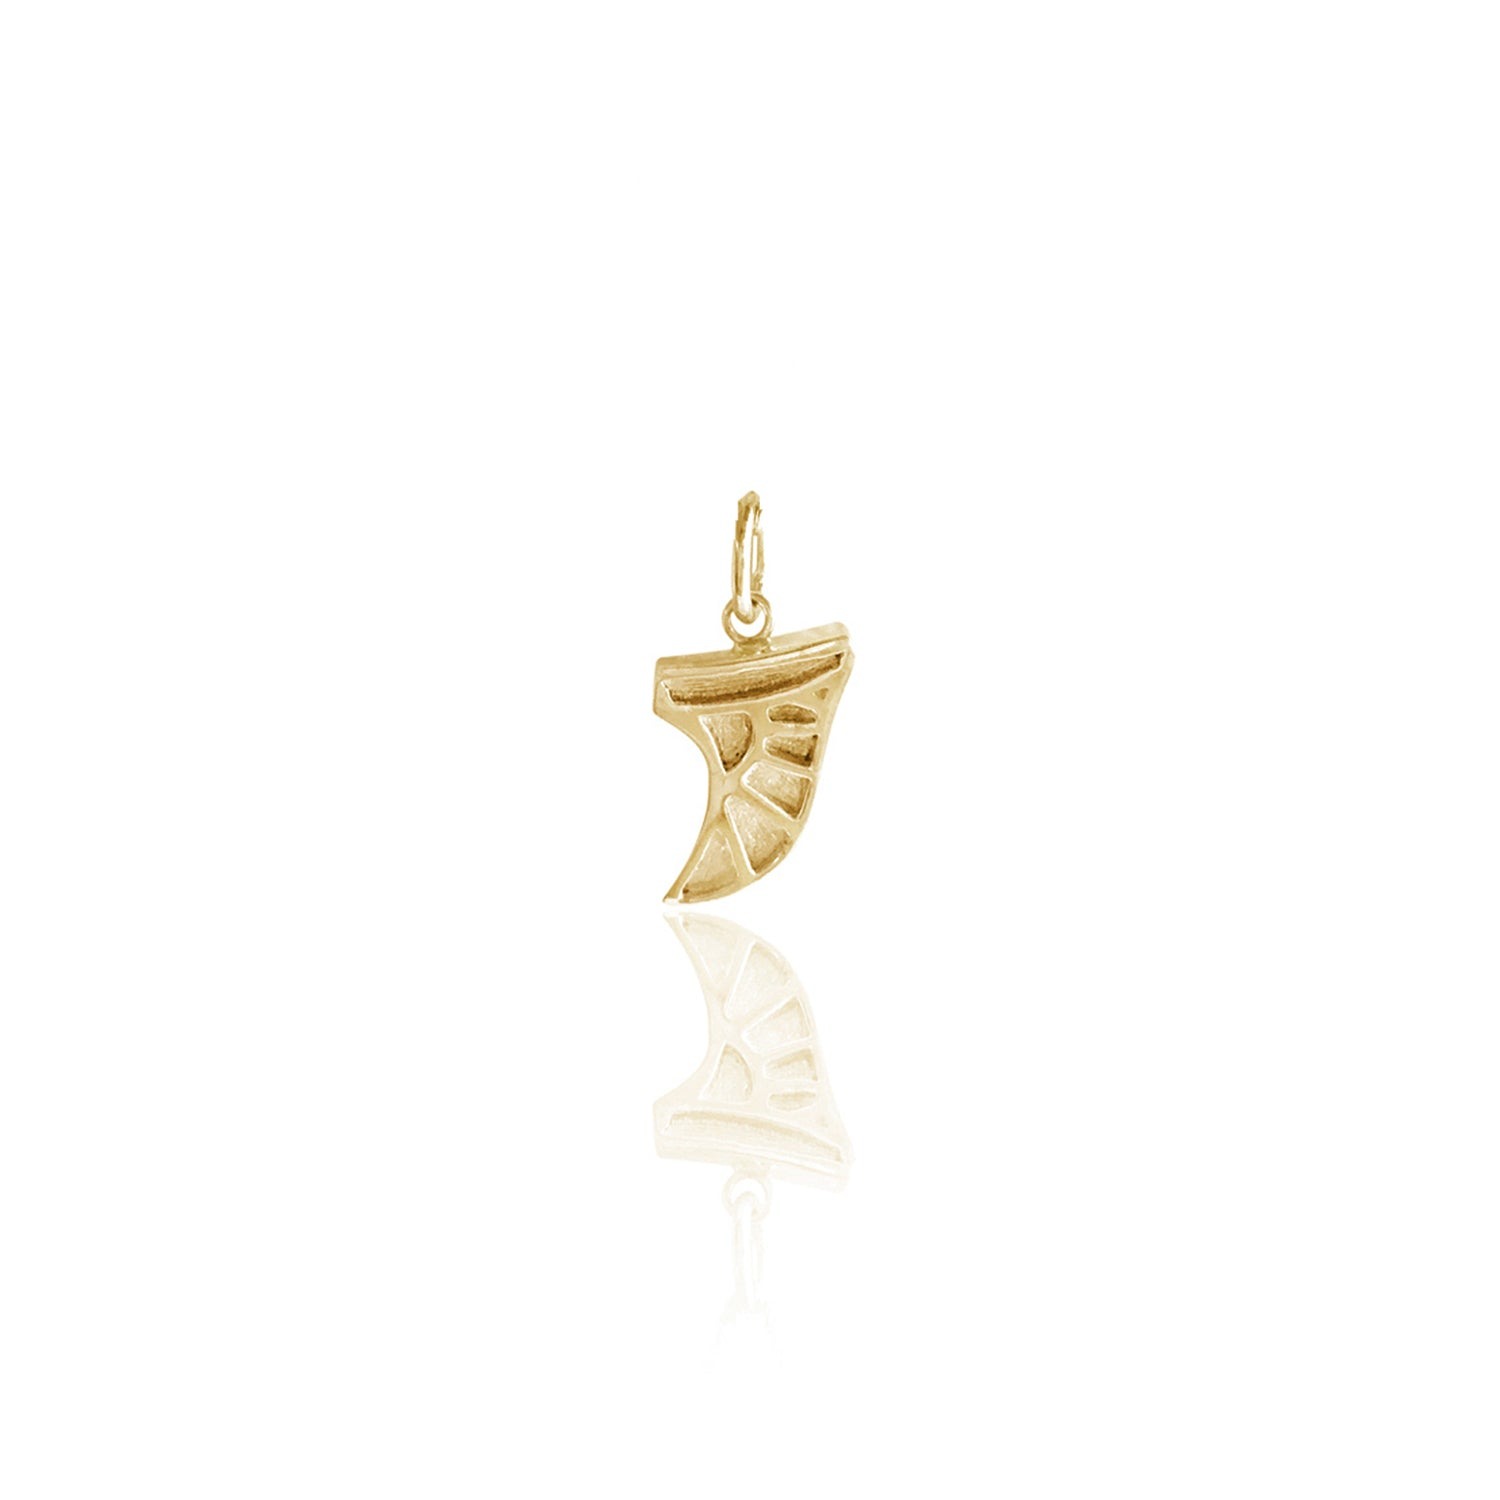 GOLDFISH KISS x LA LUNA ROSE SURF FIN CHARM (Gold)